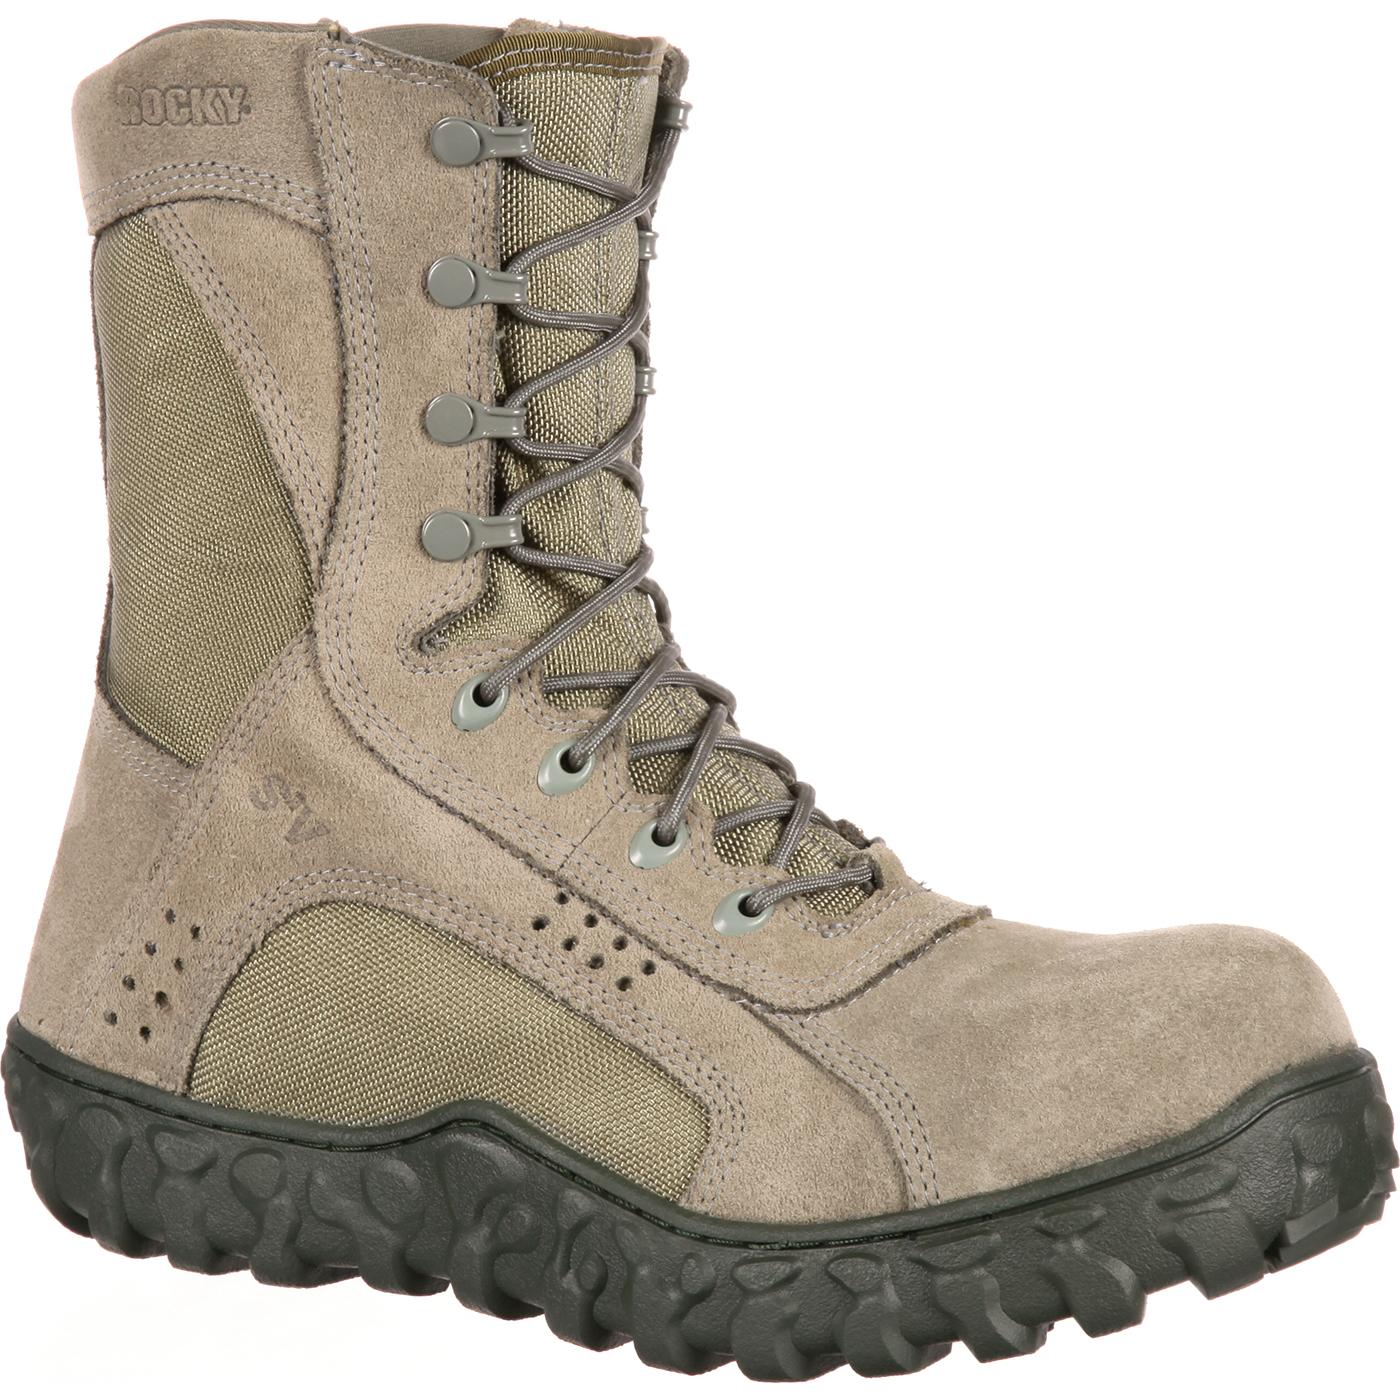 Composite Toe Tactical Military Boot Rocky S2v Rkyc027